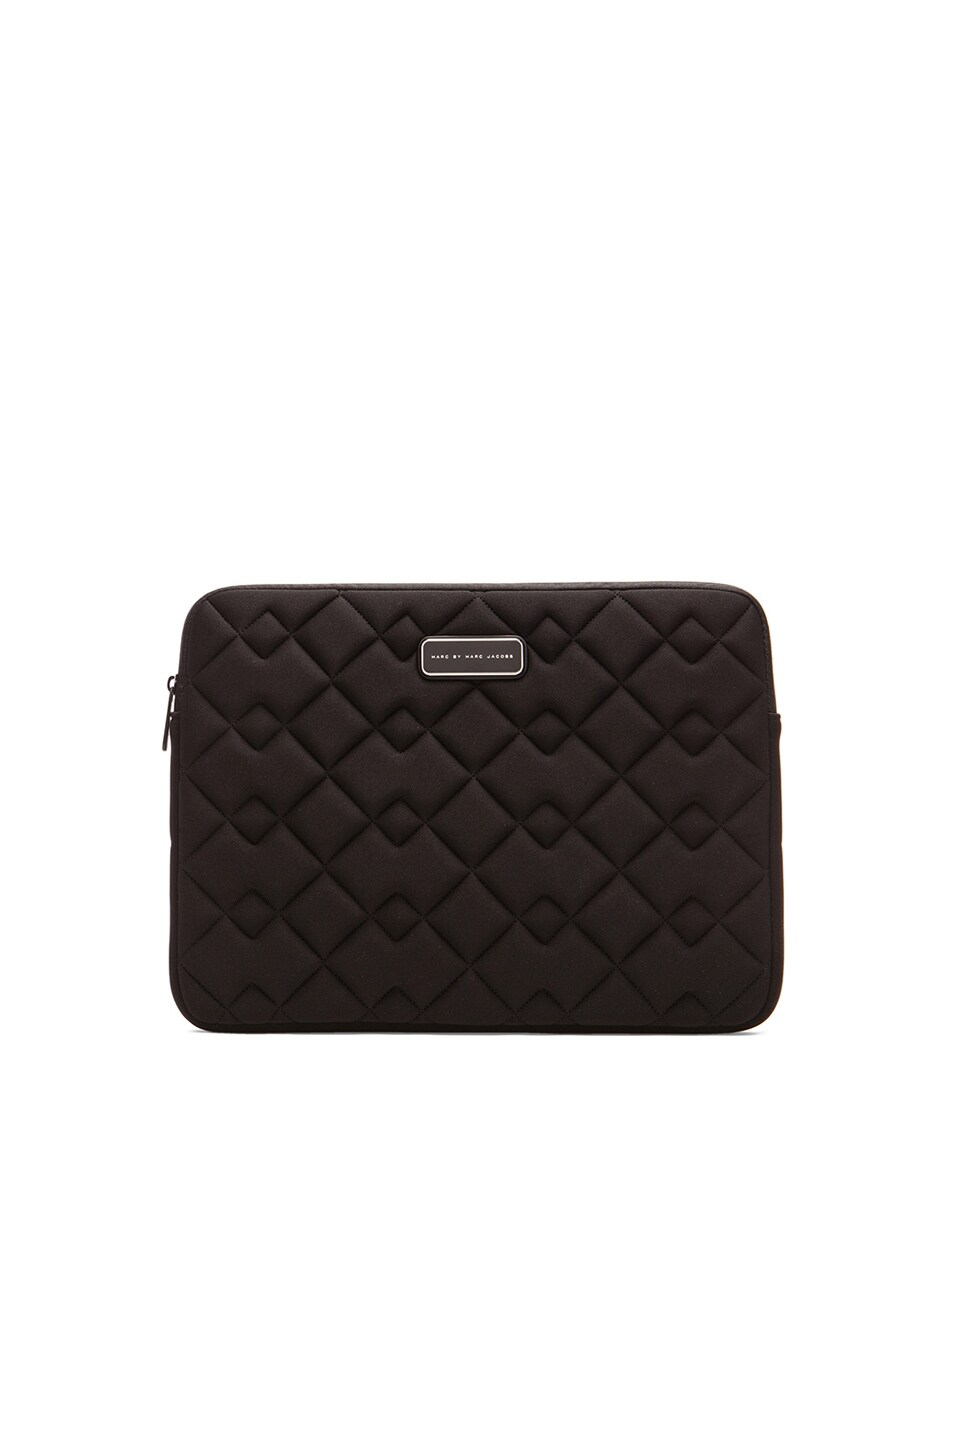 Marc by Marc Jacobs ÉTUI POUR ORDINATEUR PORTABLE CROSBY